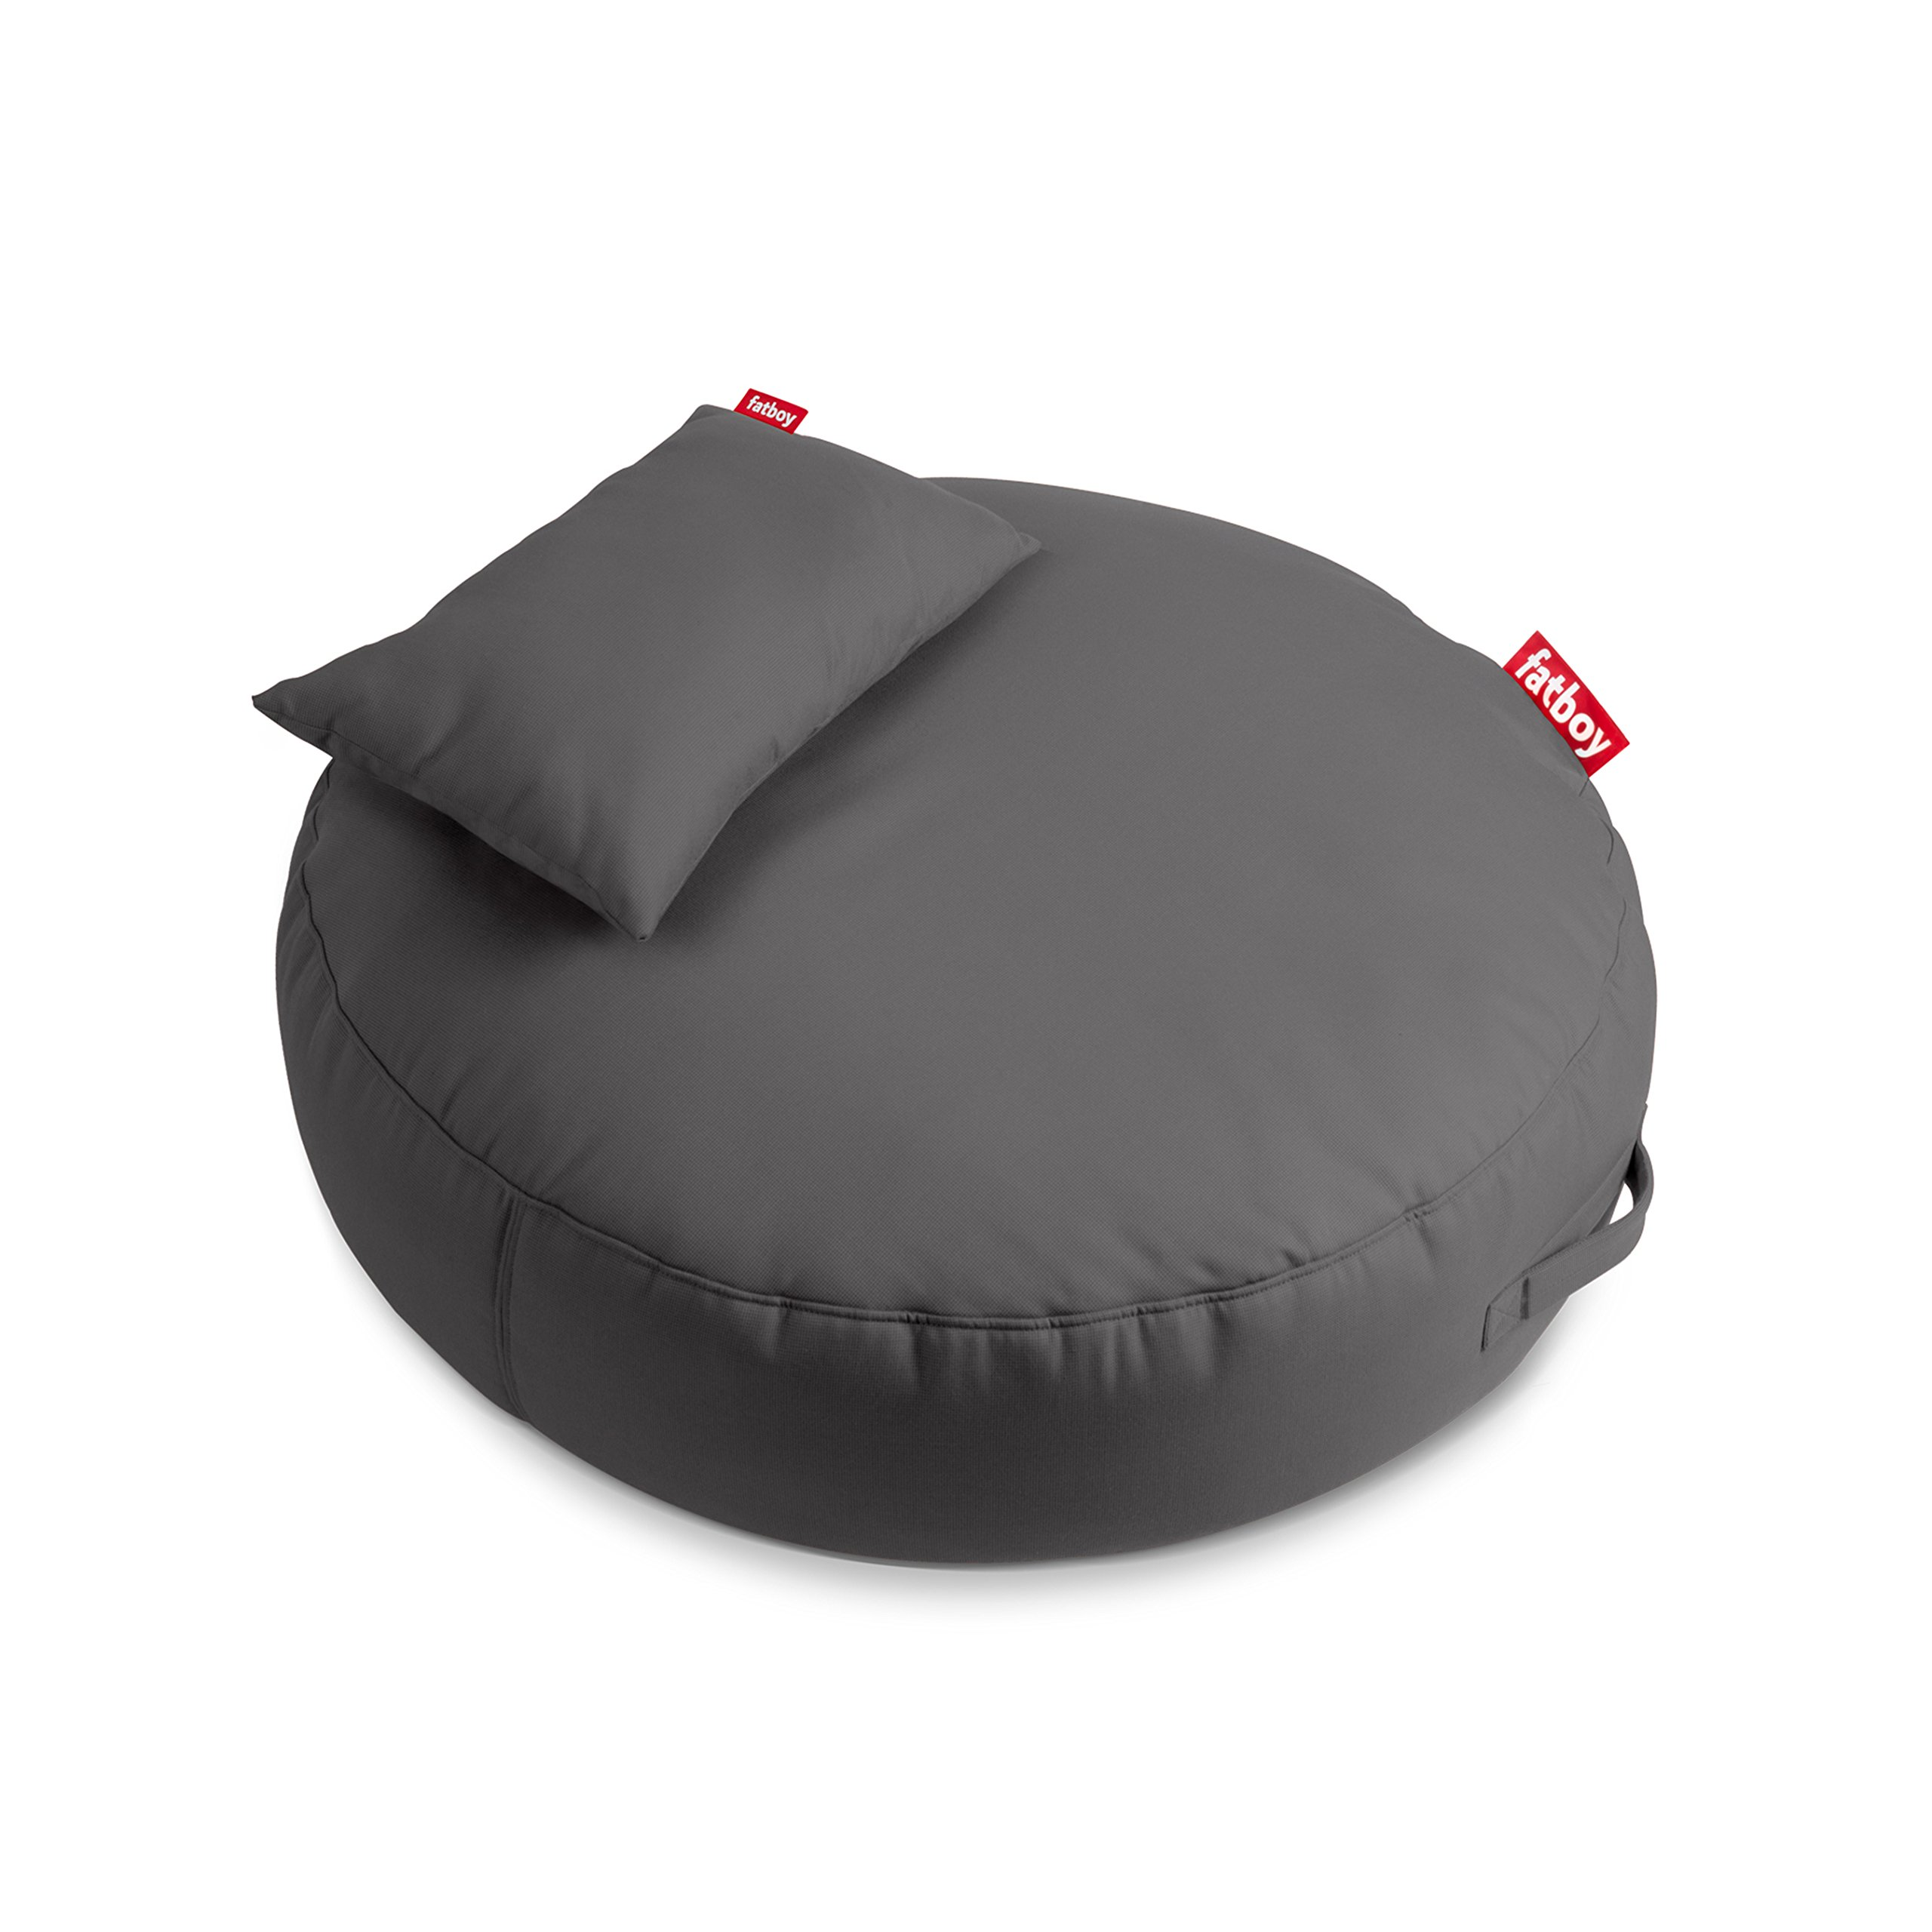 Fatboy Pupillow Indoor Outdoor Bean Bag Pouf Ottoman and Seat, Grey